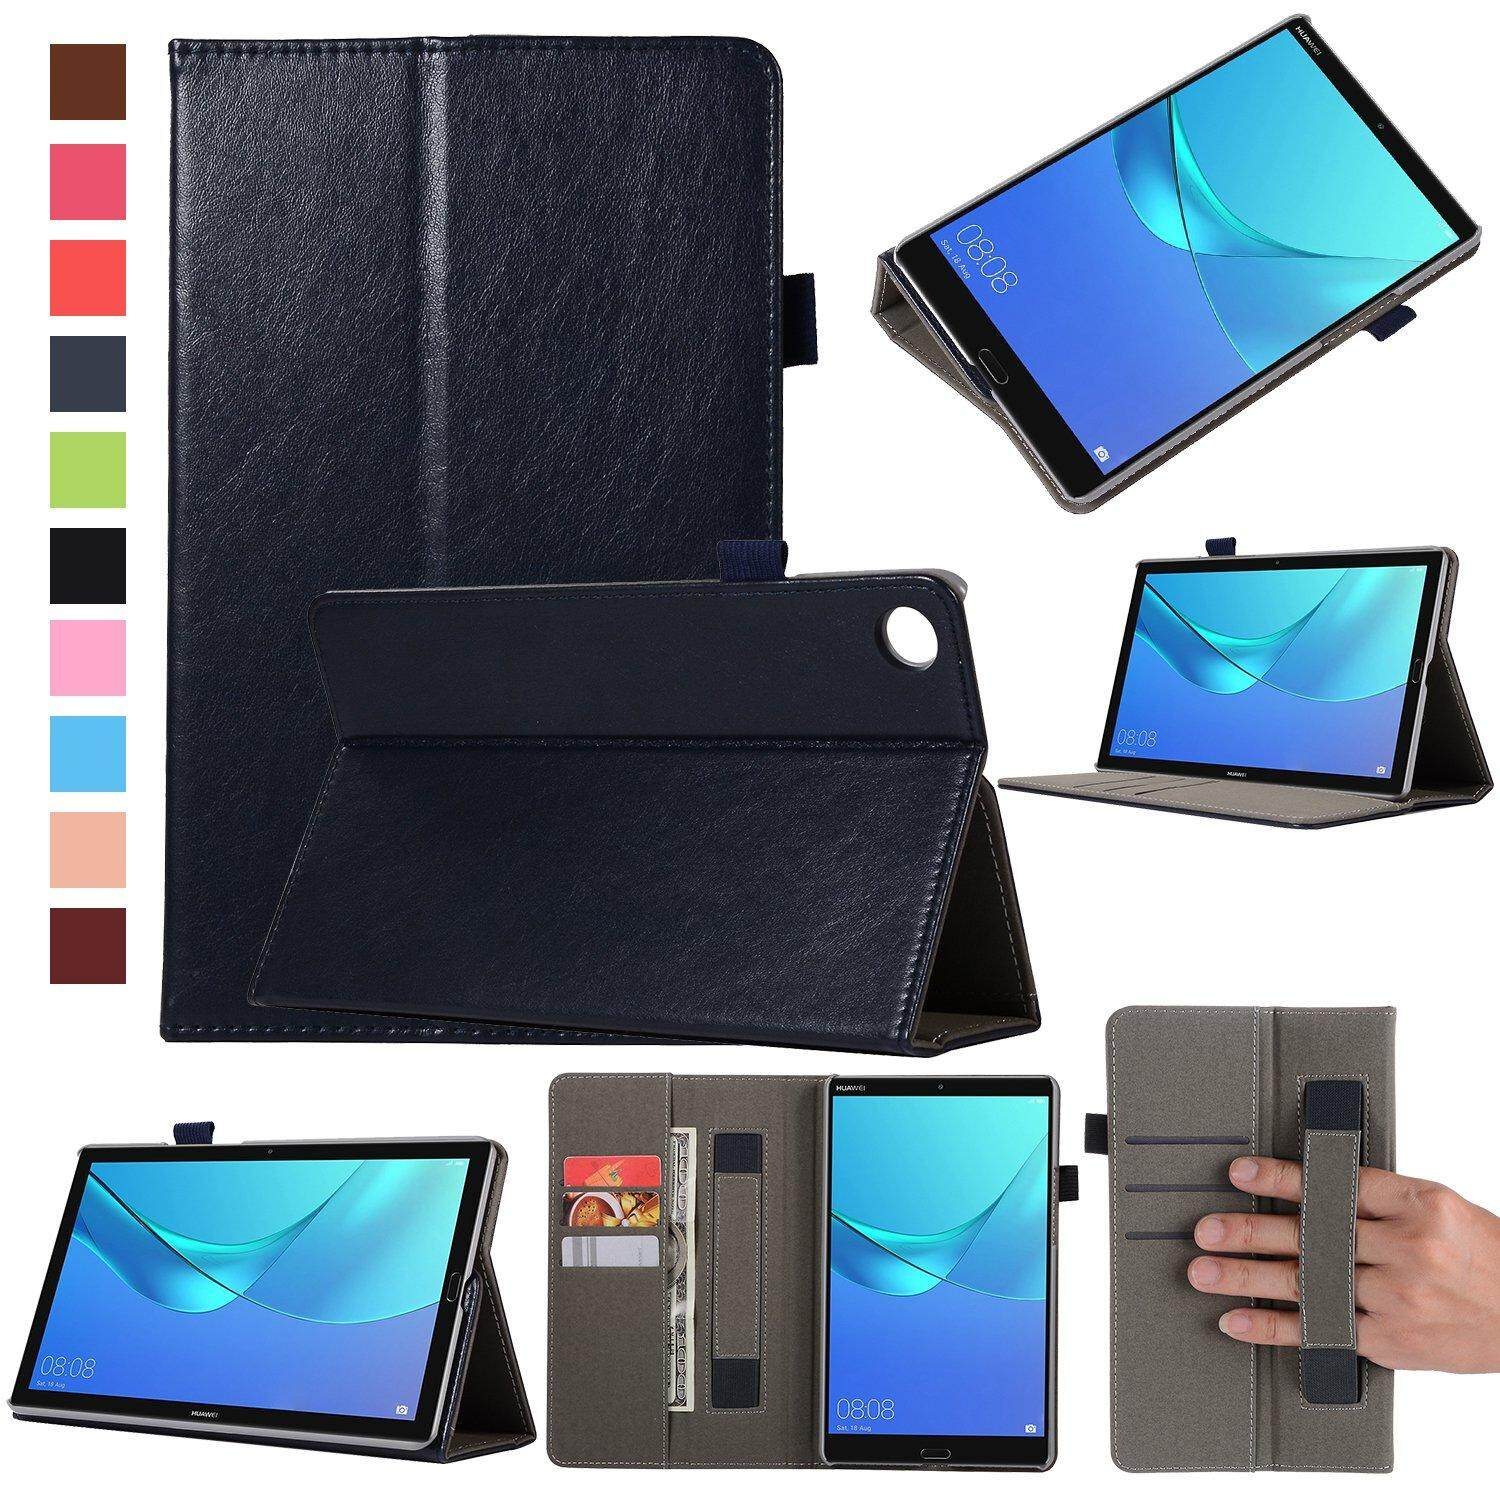 meet 7d2e9 ff149 For Huawei Mediapad M5 8.4 Case, PU Leather Smart Wallet Case with Flip  Stand with Auto Sleep/Wake Function for Huawei Mediapad M5 8.4 inch Tablet  ...